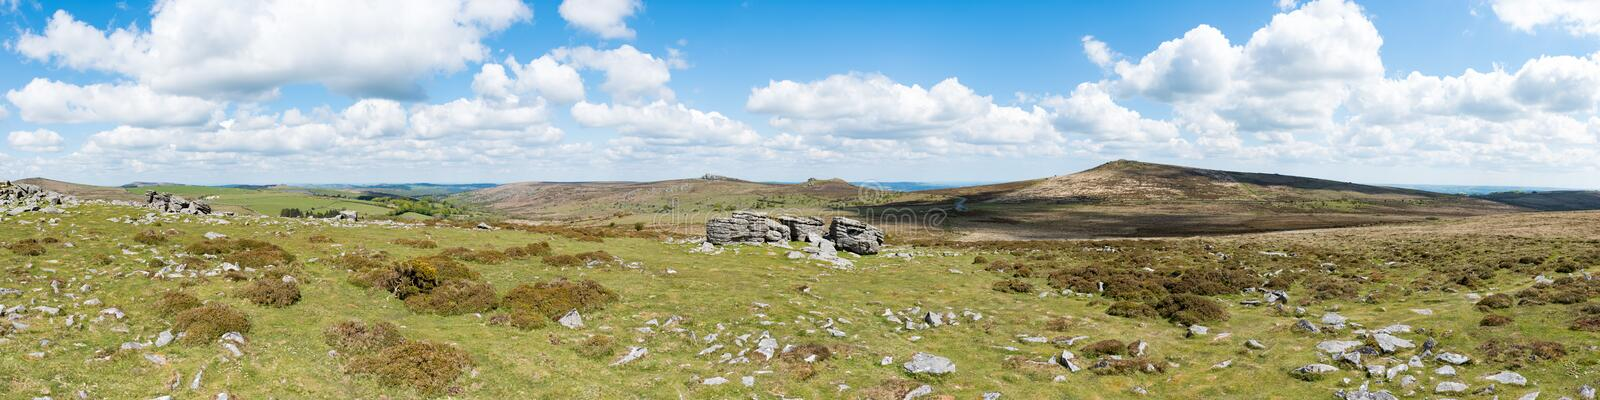 Panoramic view of the granite bedrock outcrops at Top Tor, Dartmoor National Park, Devon, UK, on a bright cloudy day royalty free stock image